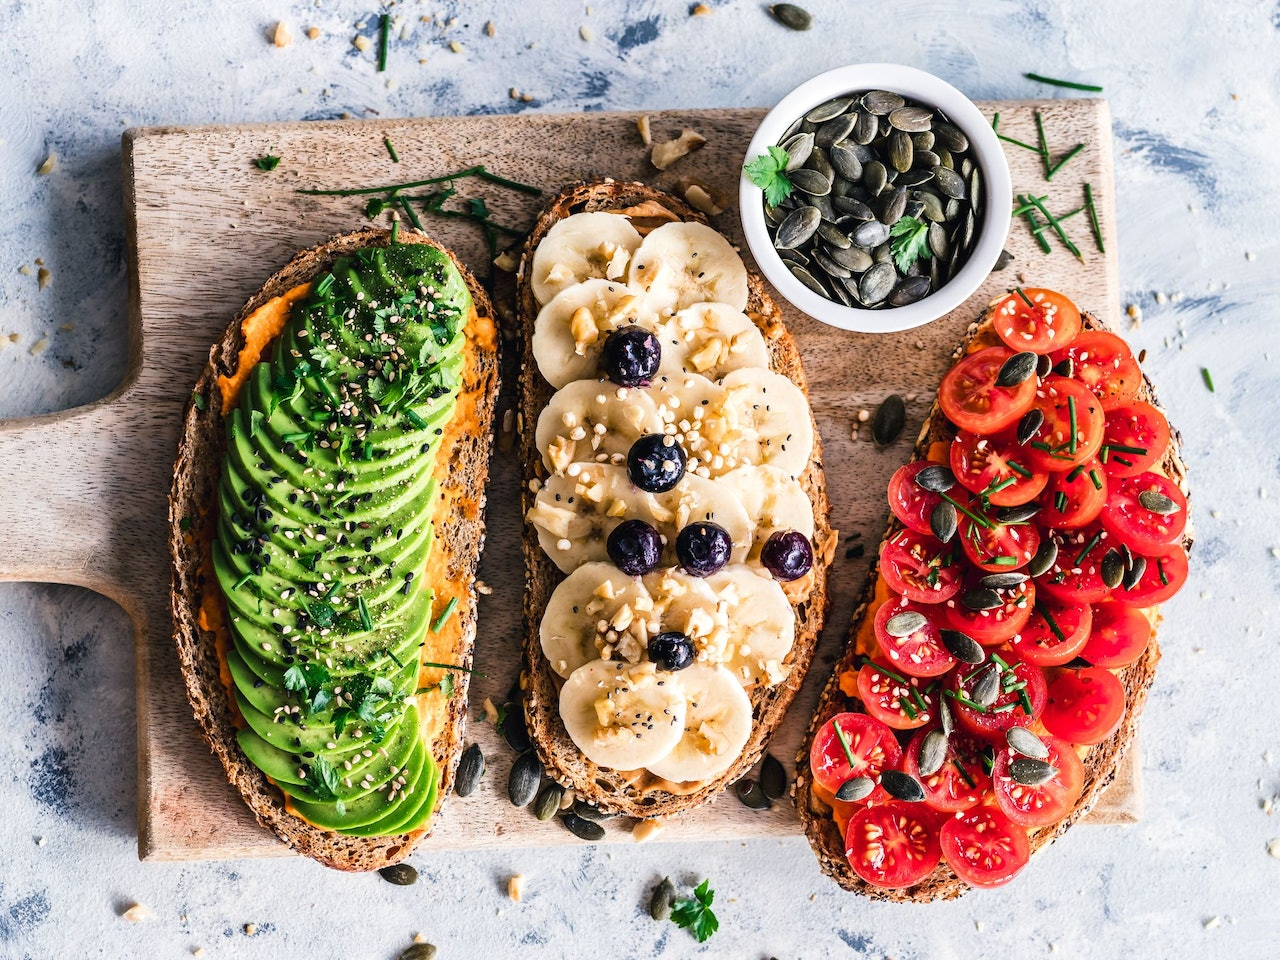 Vegan and Vegetarian Restaurants Zero Waste Bend and Central Oregon by Conscious by Chloé